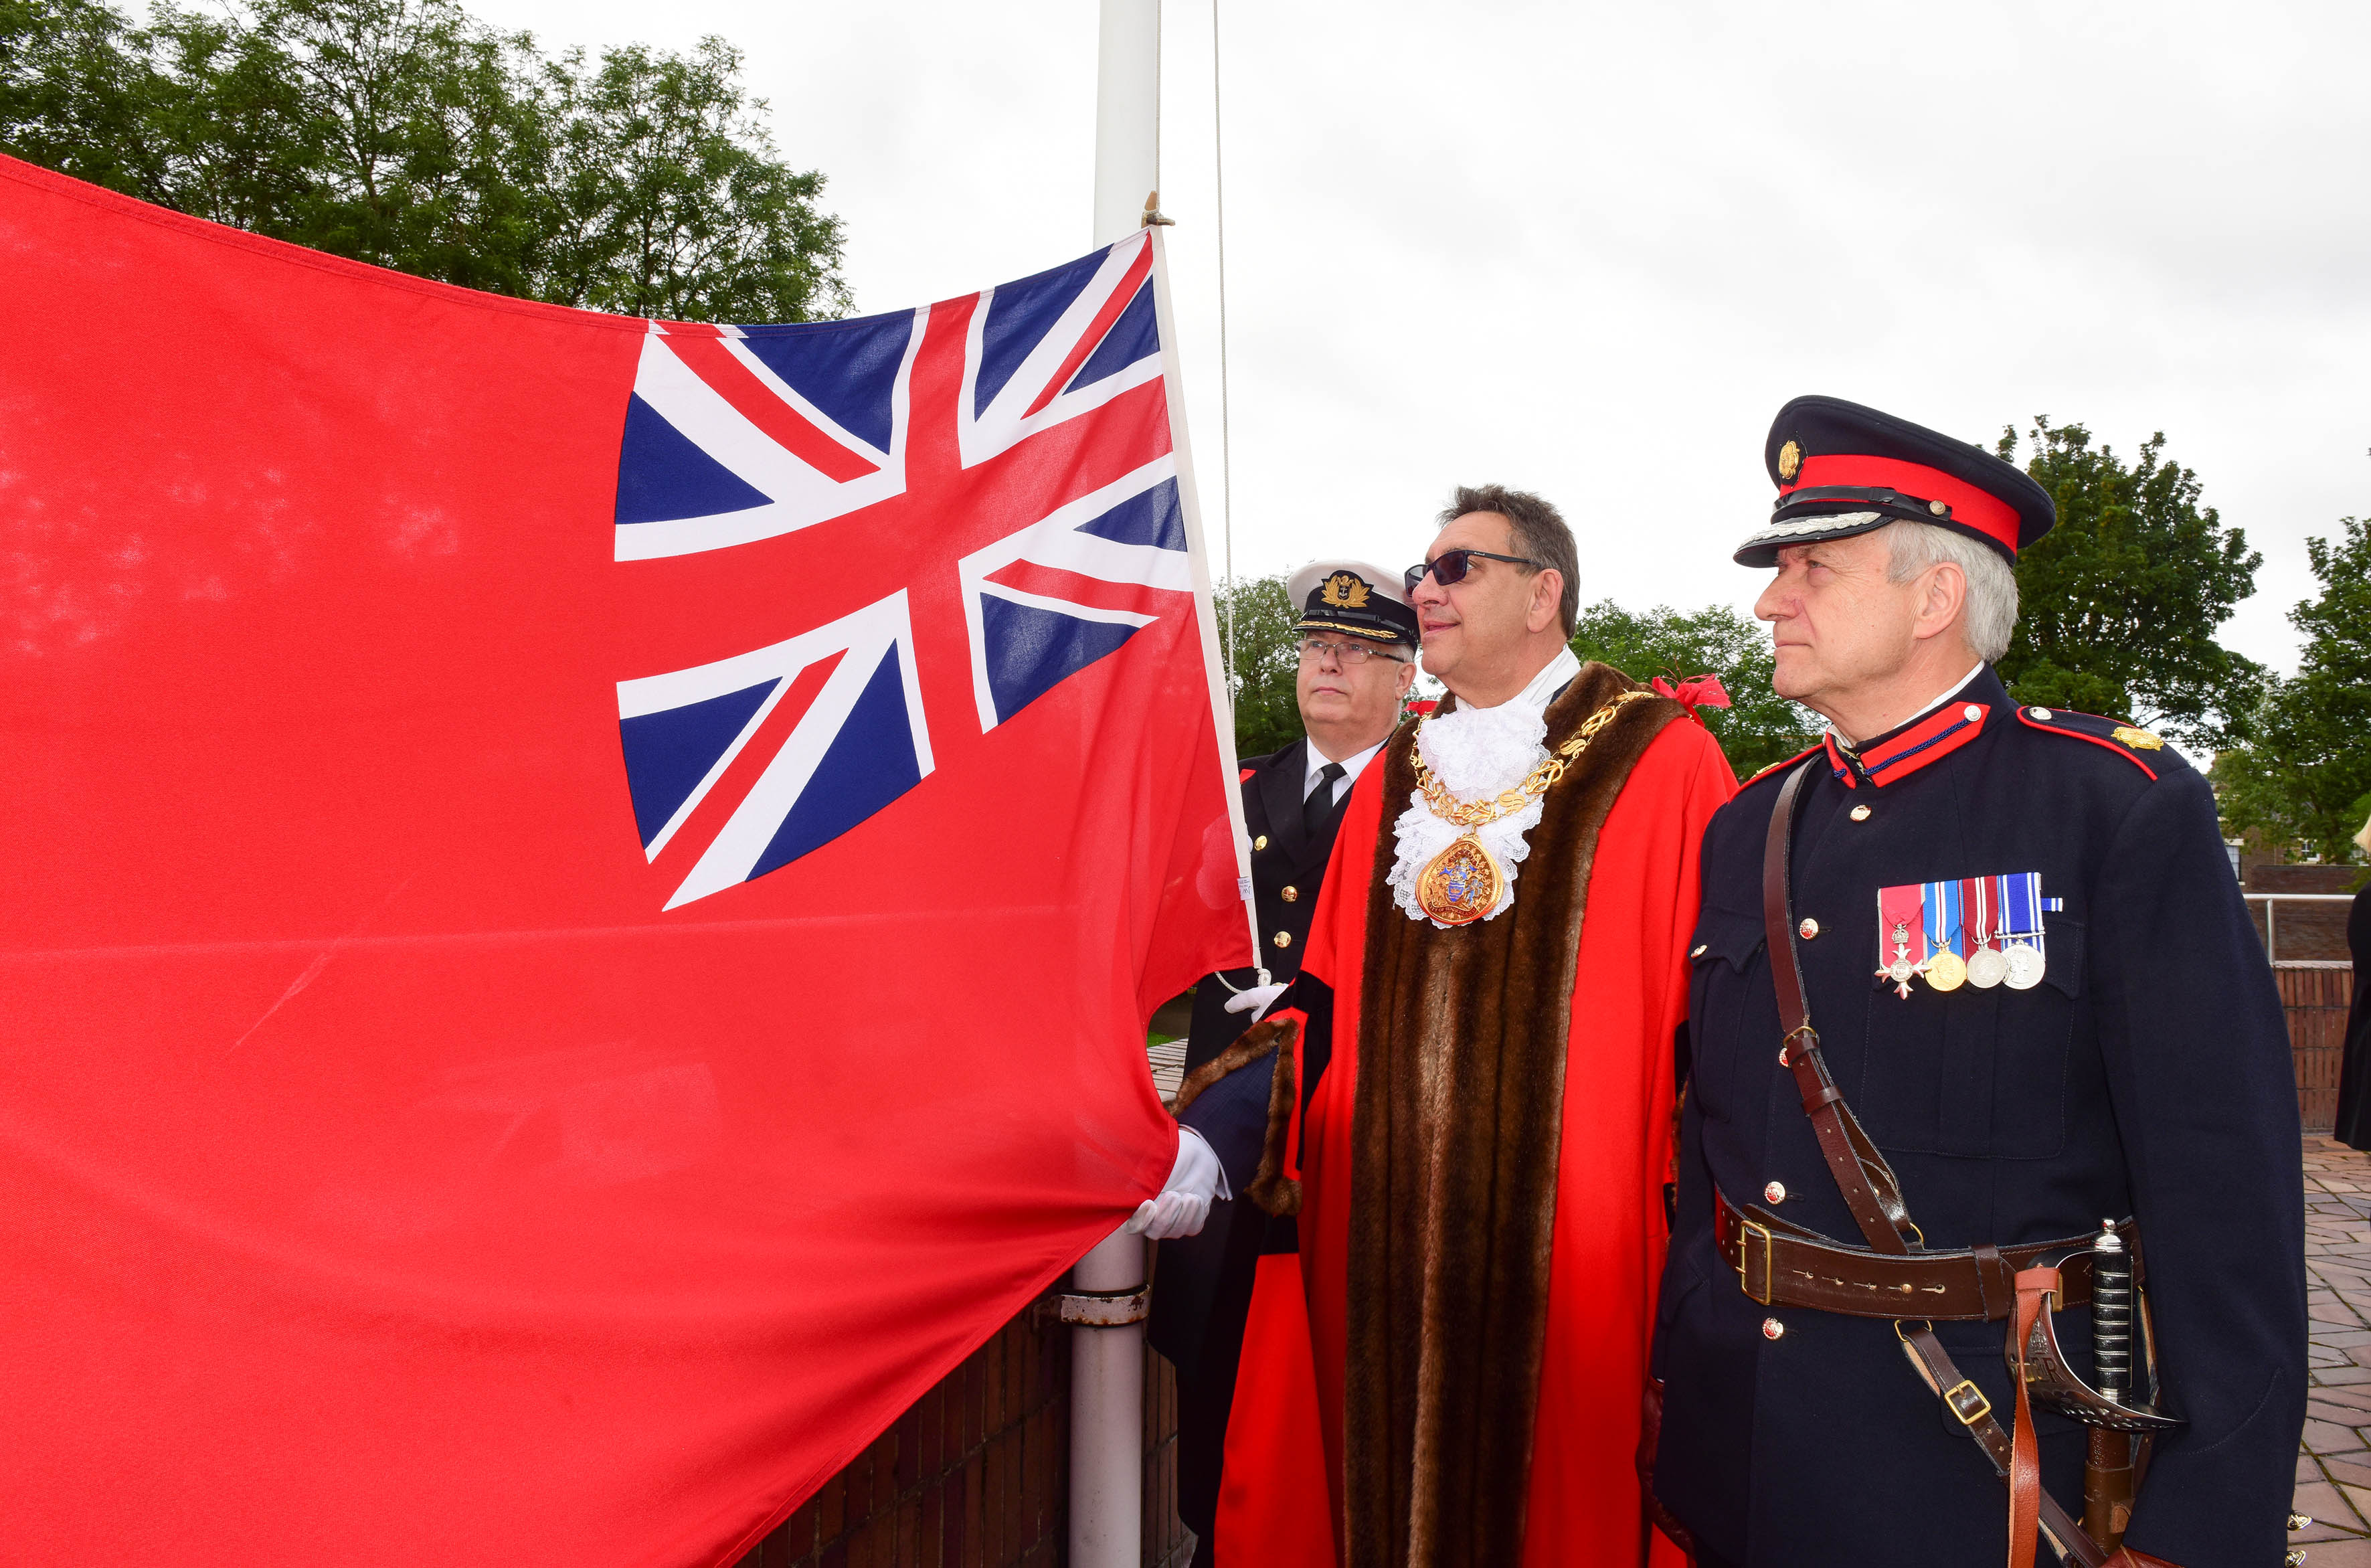 Red Ensign Day